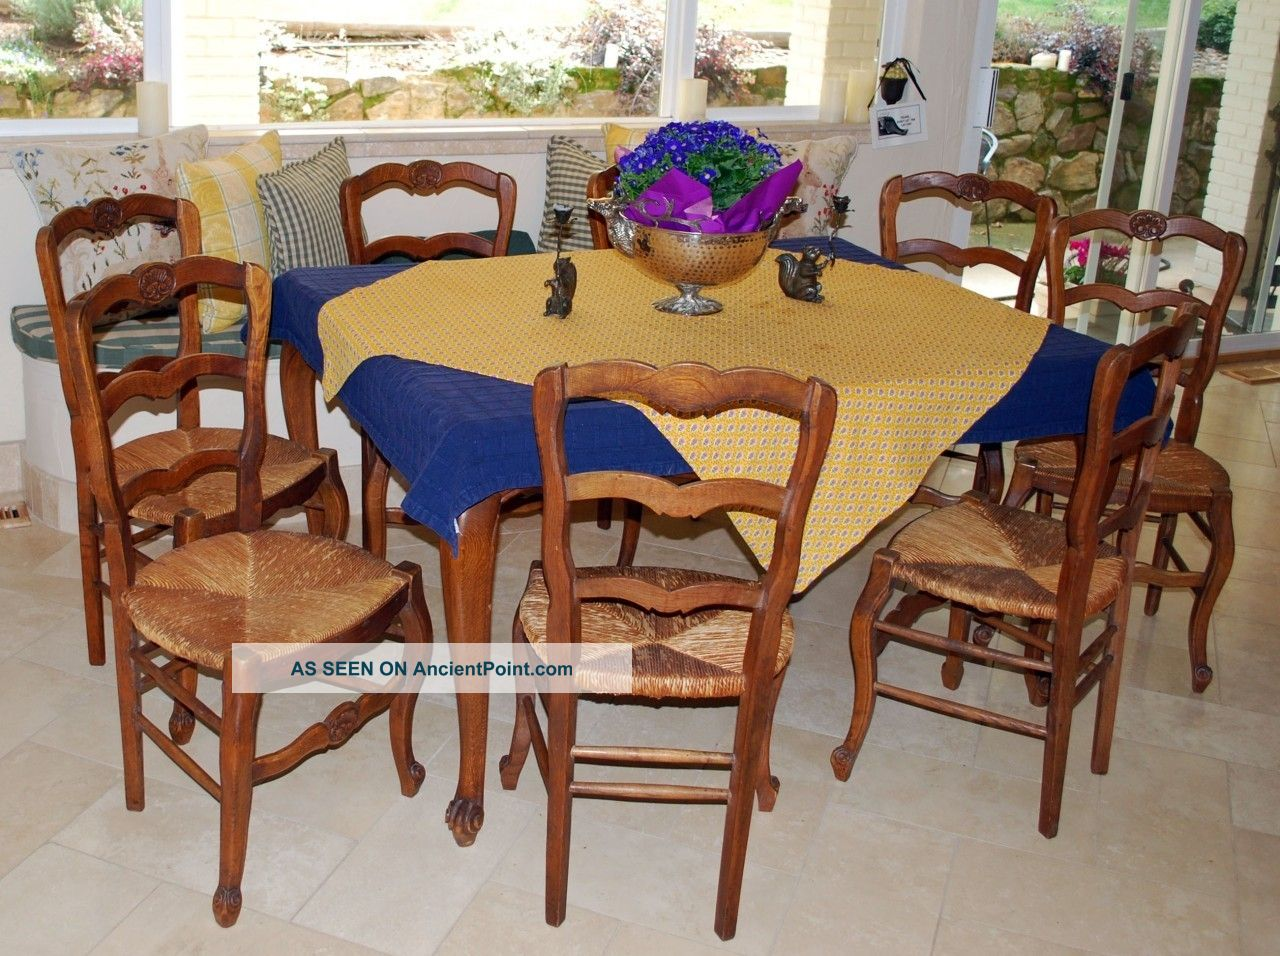 8 Antique French Country Chairs France Kitchen Dining Rush